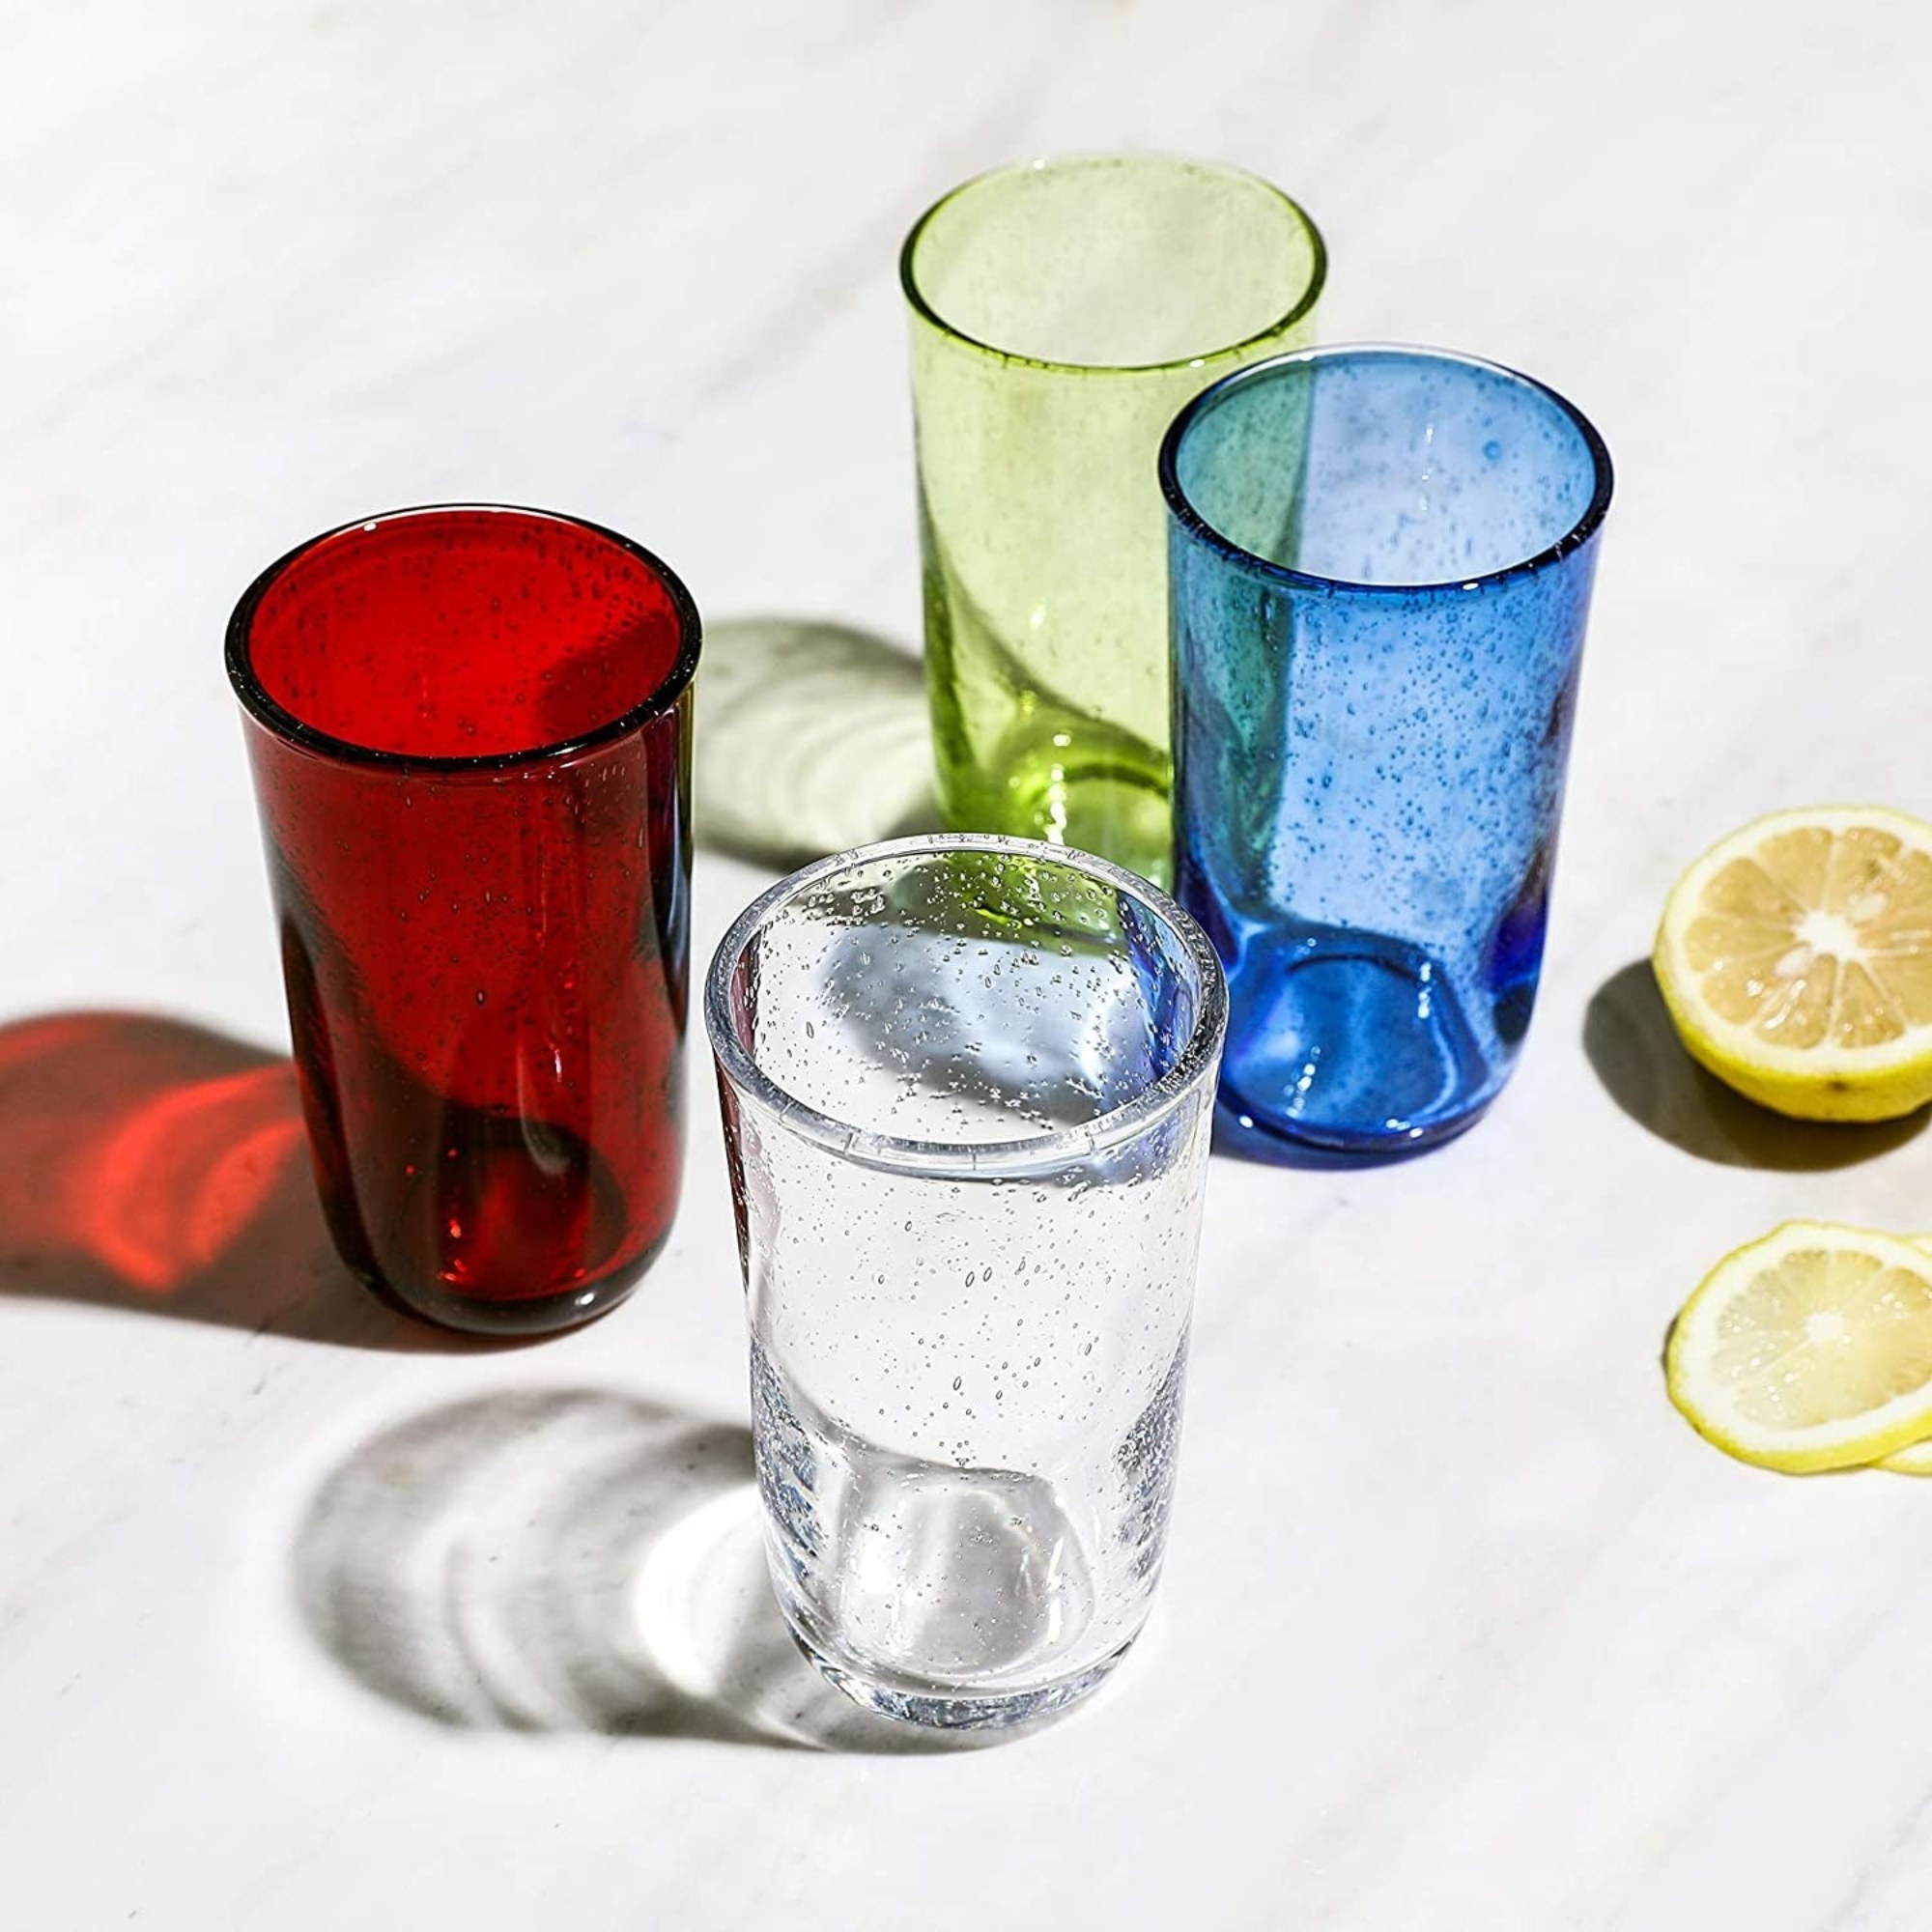 Set of glasses with small bubbles in the glass in clear, red, blue, and green